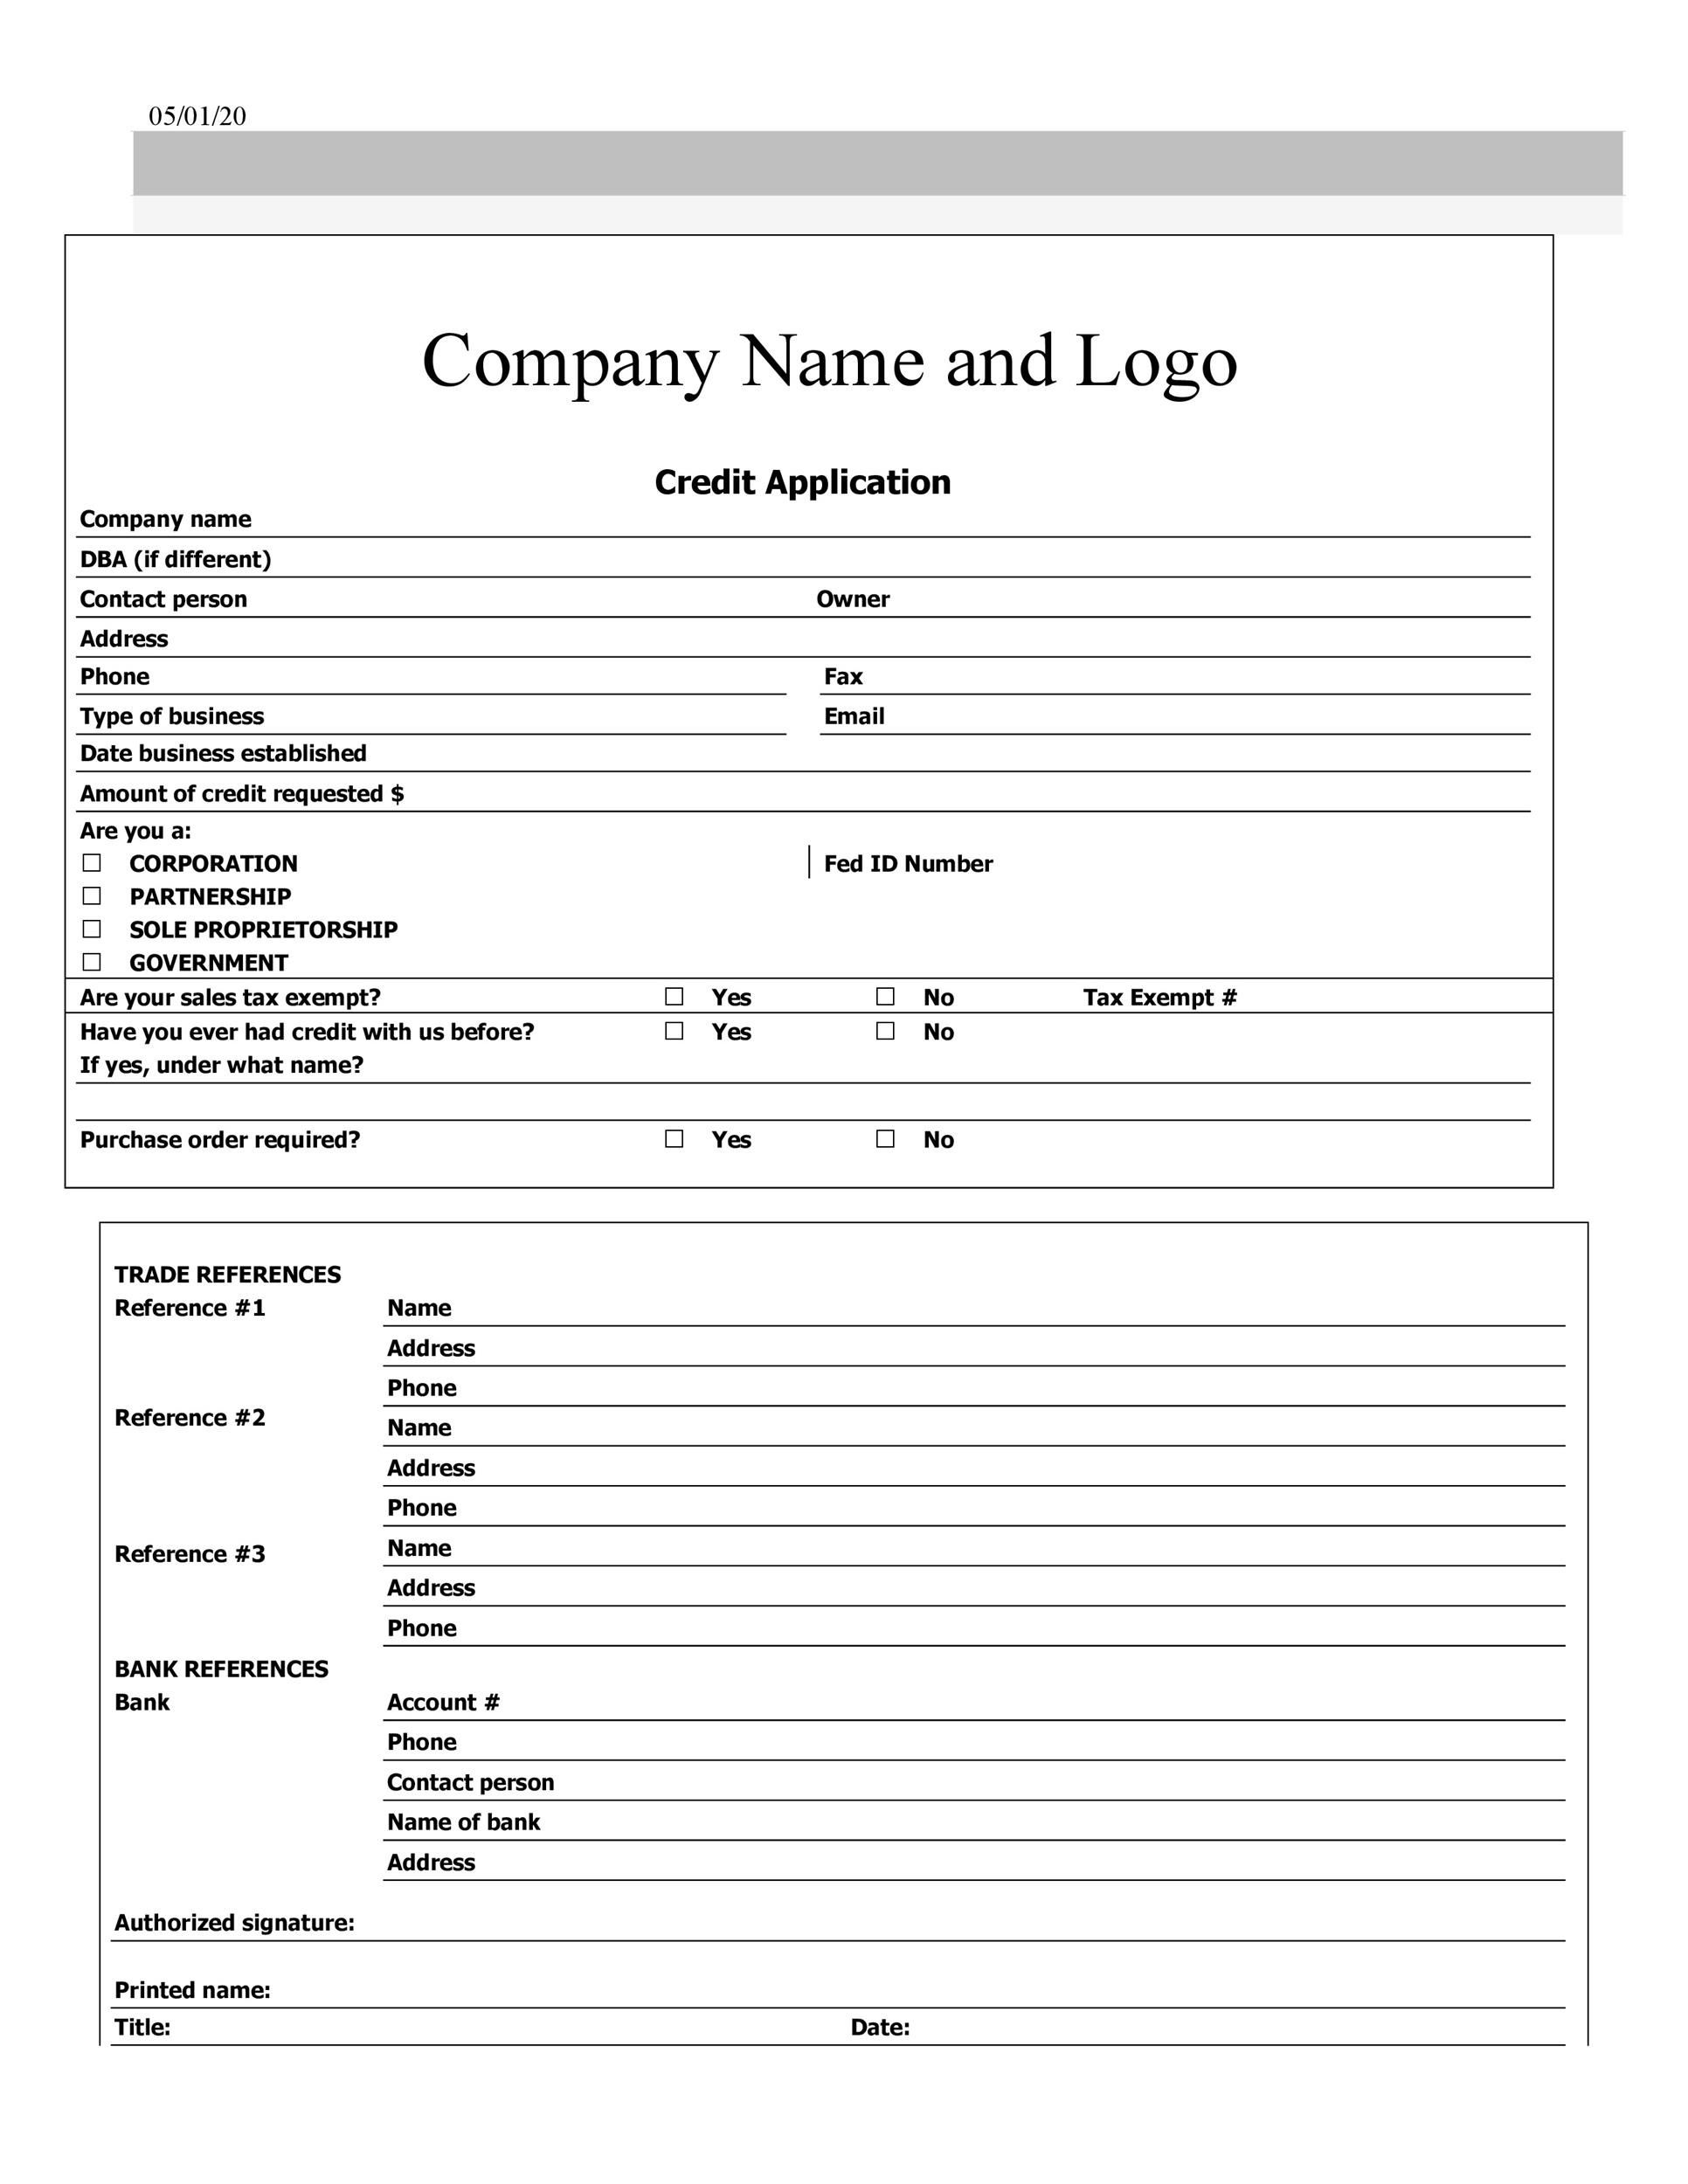 007 Excellent New Customer Account Application Form Template Image  Busines Uk OpeningFull